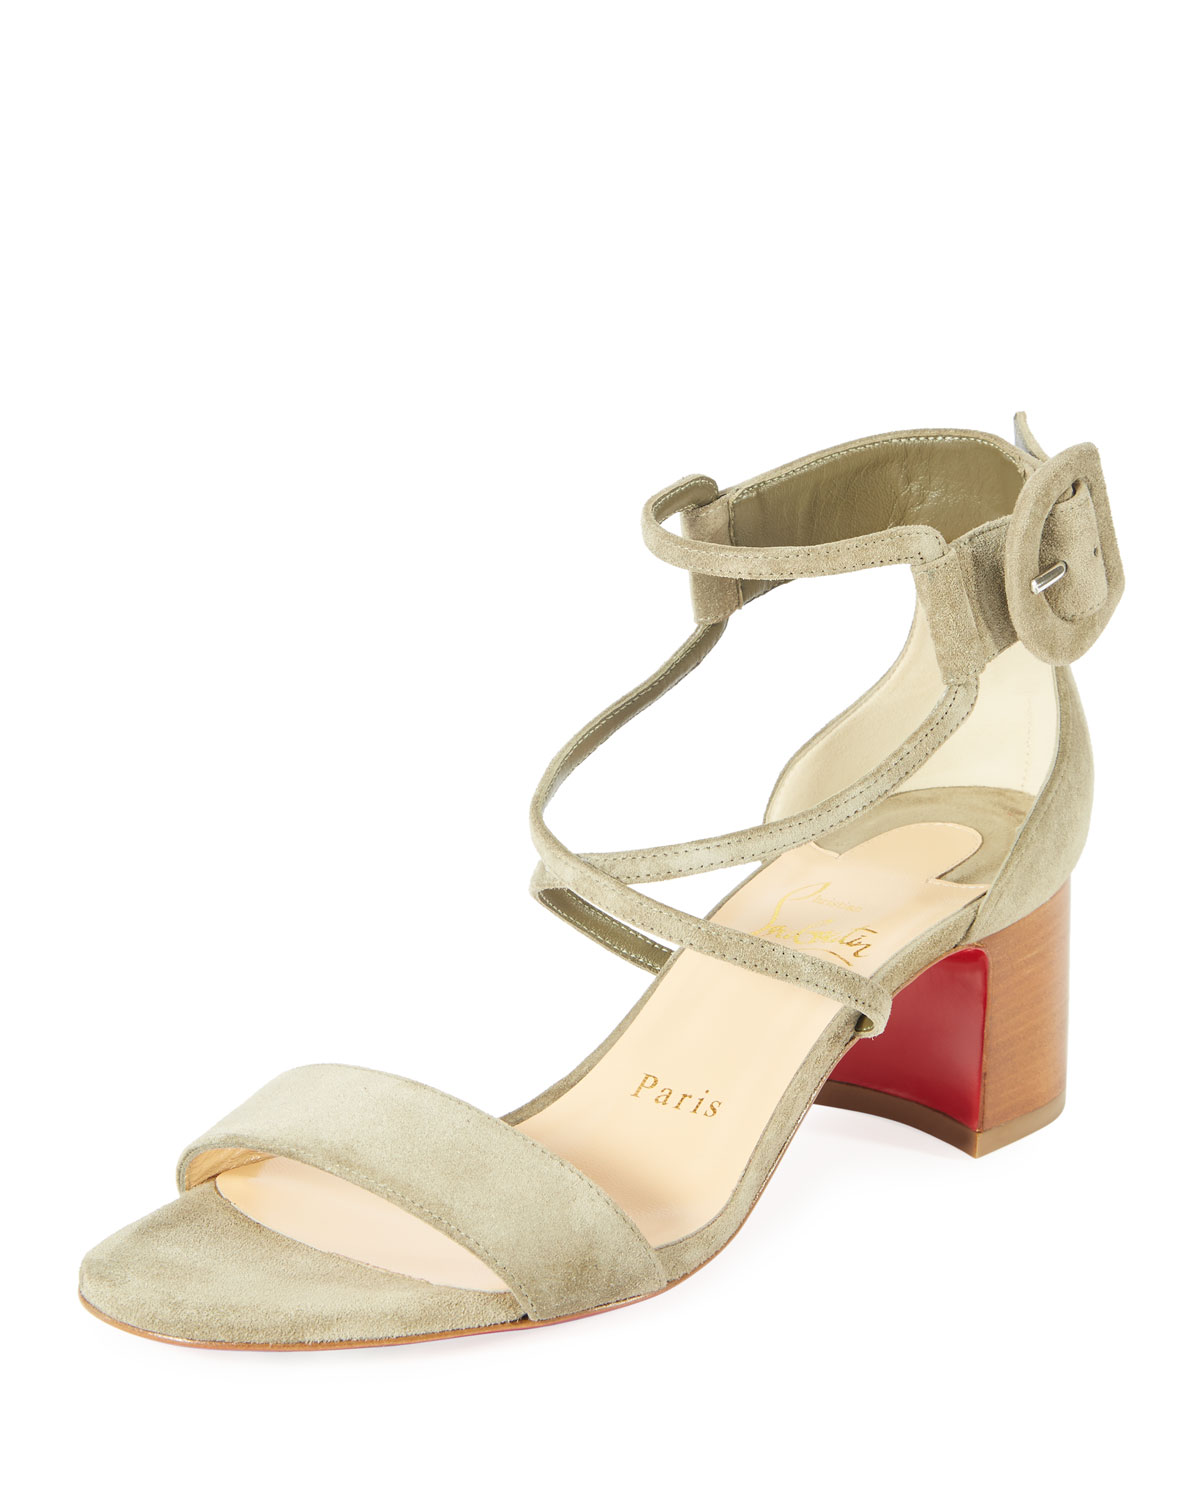 be05879485 Christian Louboutin Choca 55mm Suede Red Sole Sandal | Neiman Marcus